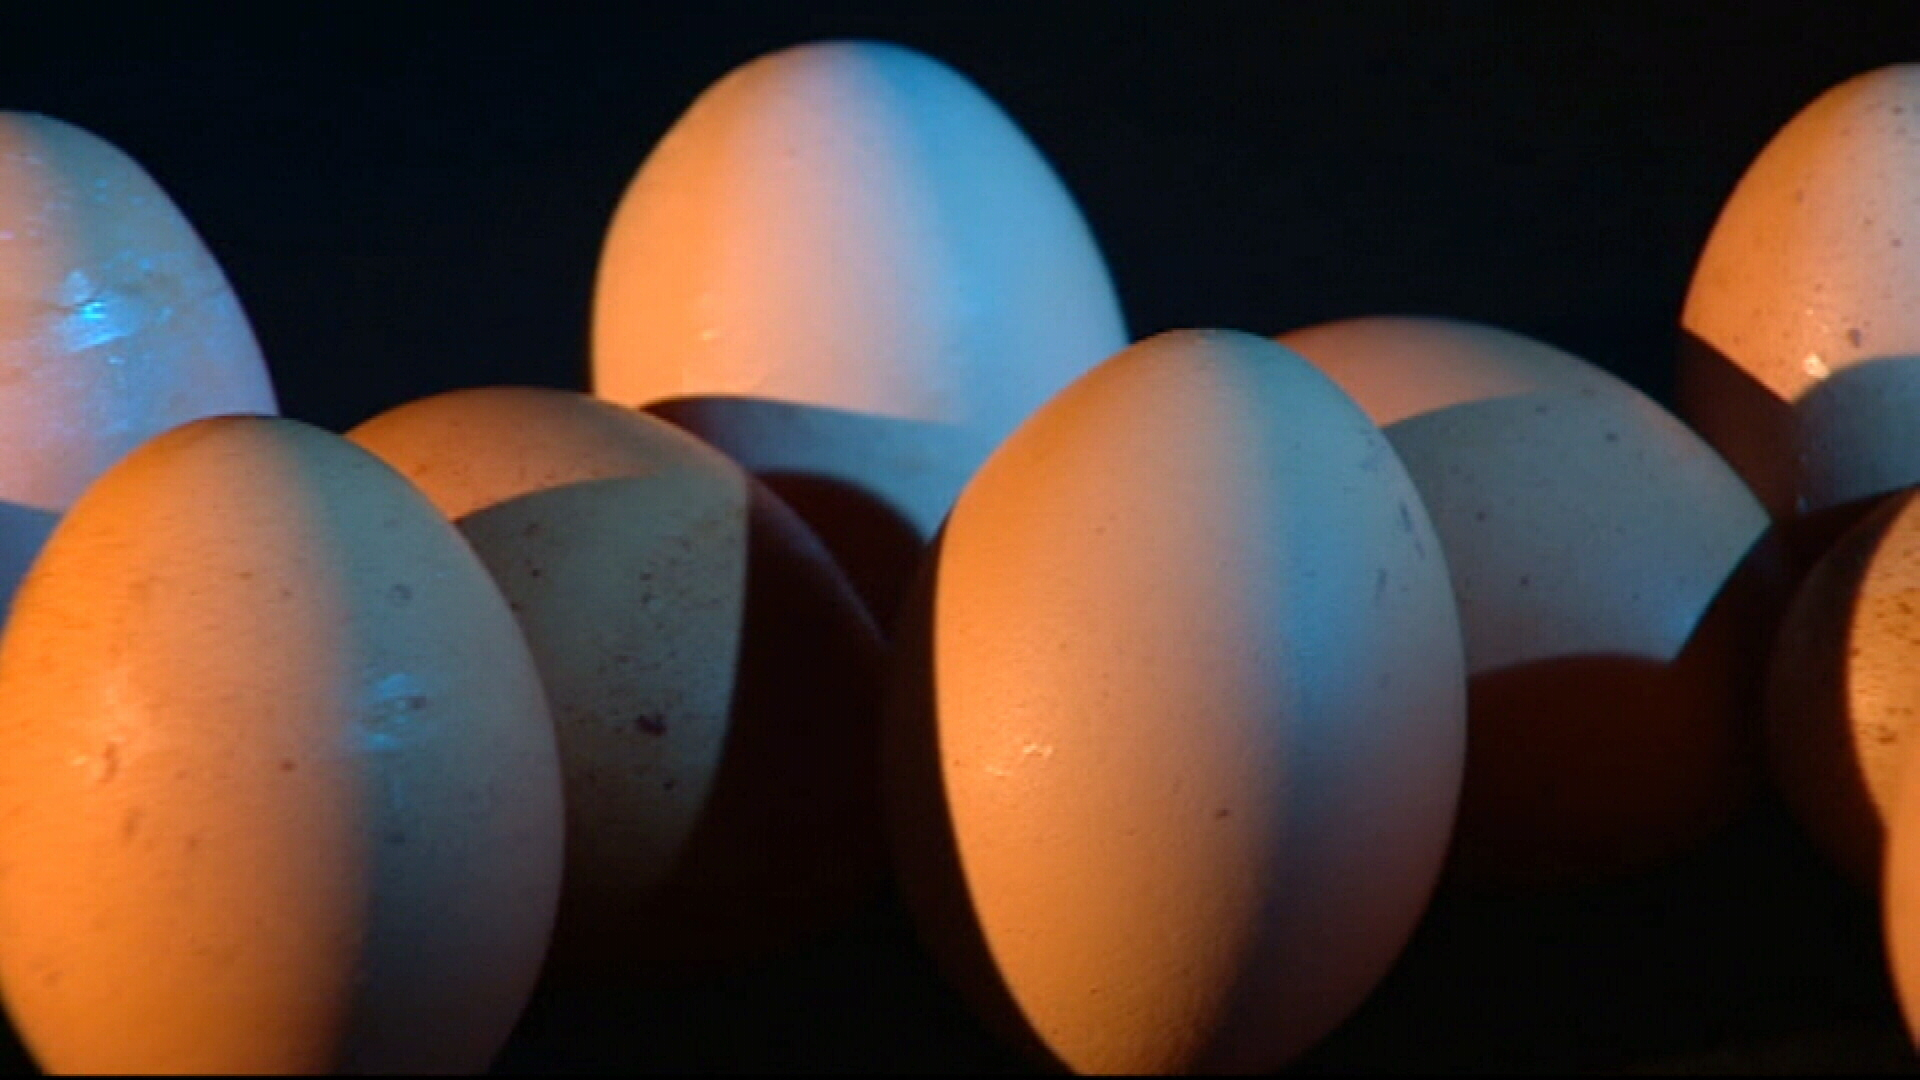 Eggs pulled from Australian supermarkets due to Salmonella fears